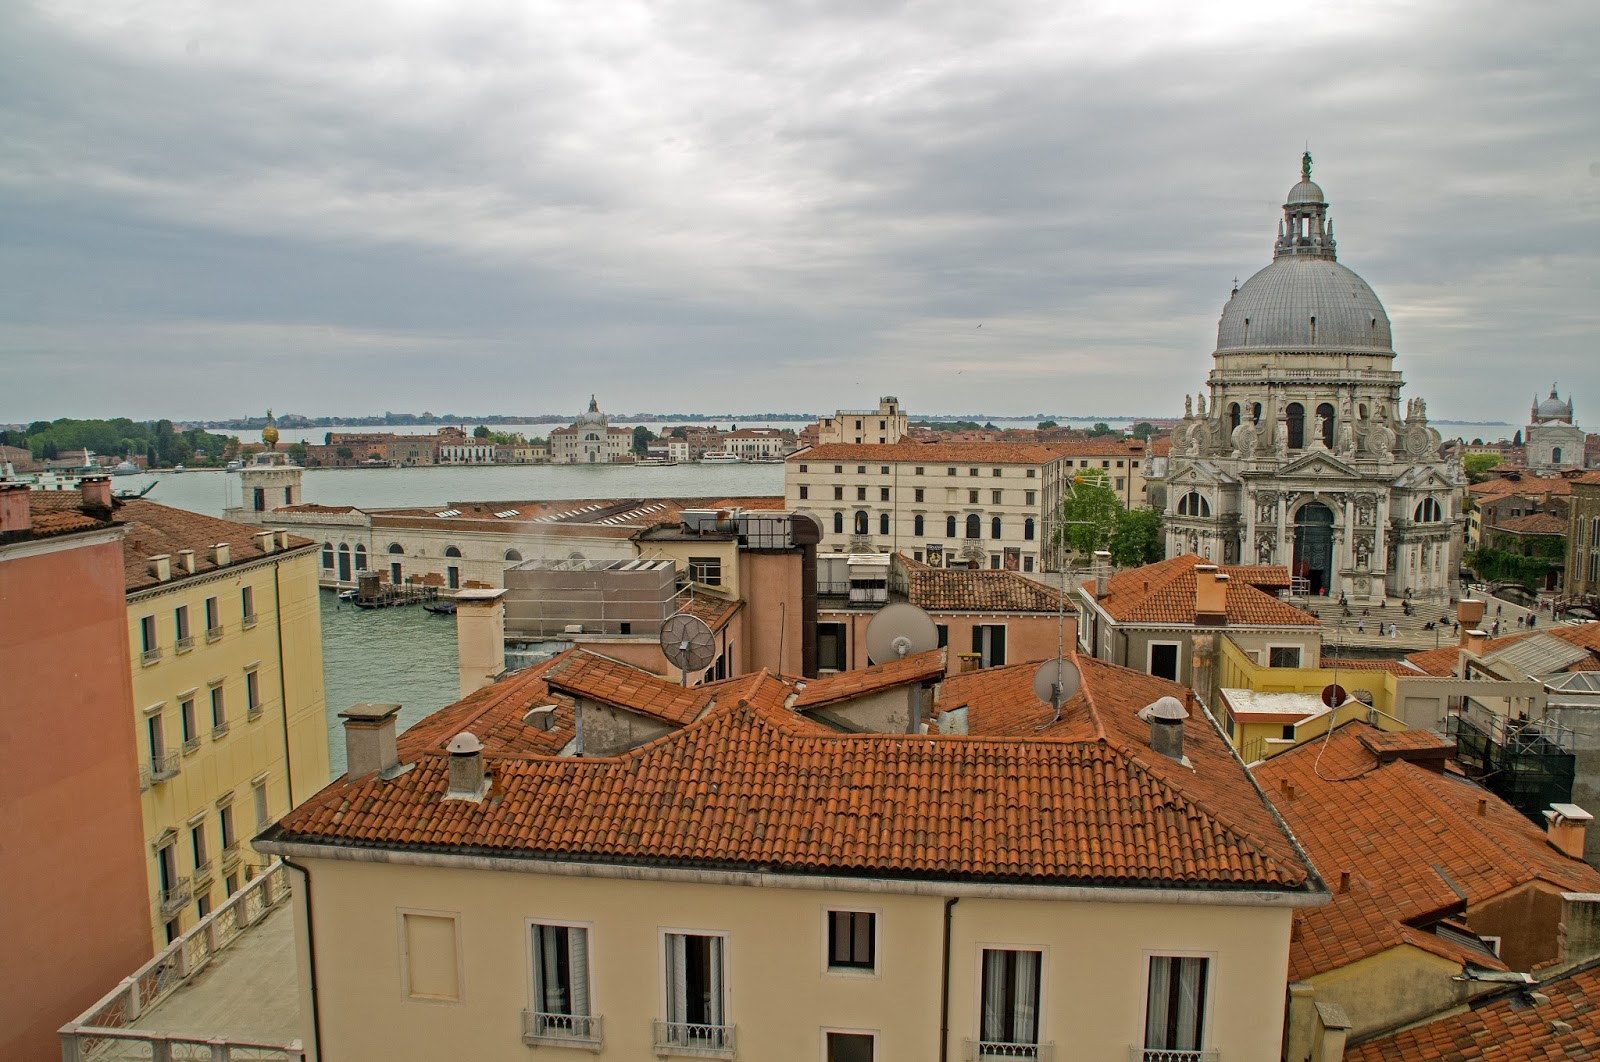 Westin Europa & Regina Venice Views from rooftop terrace